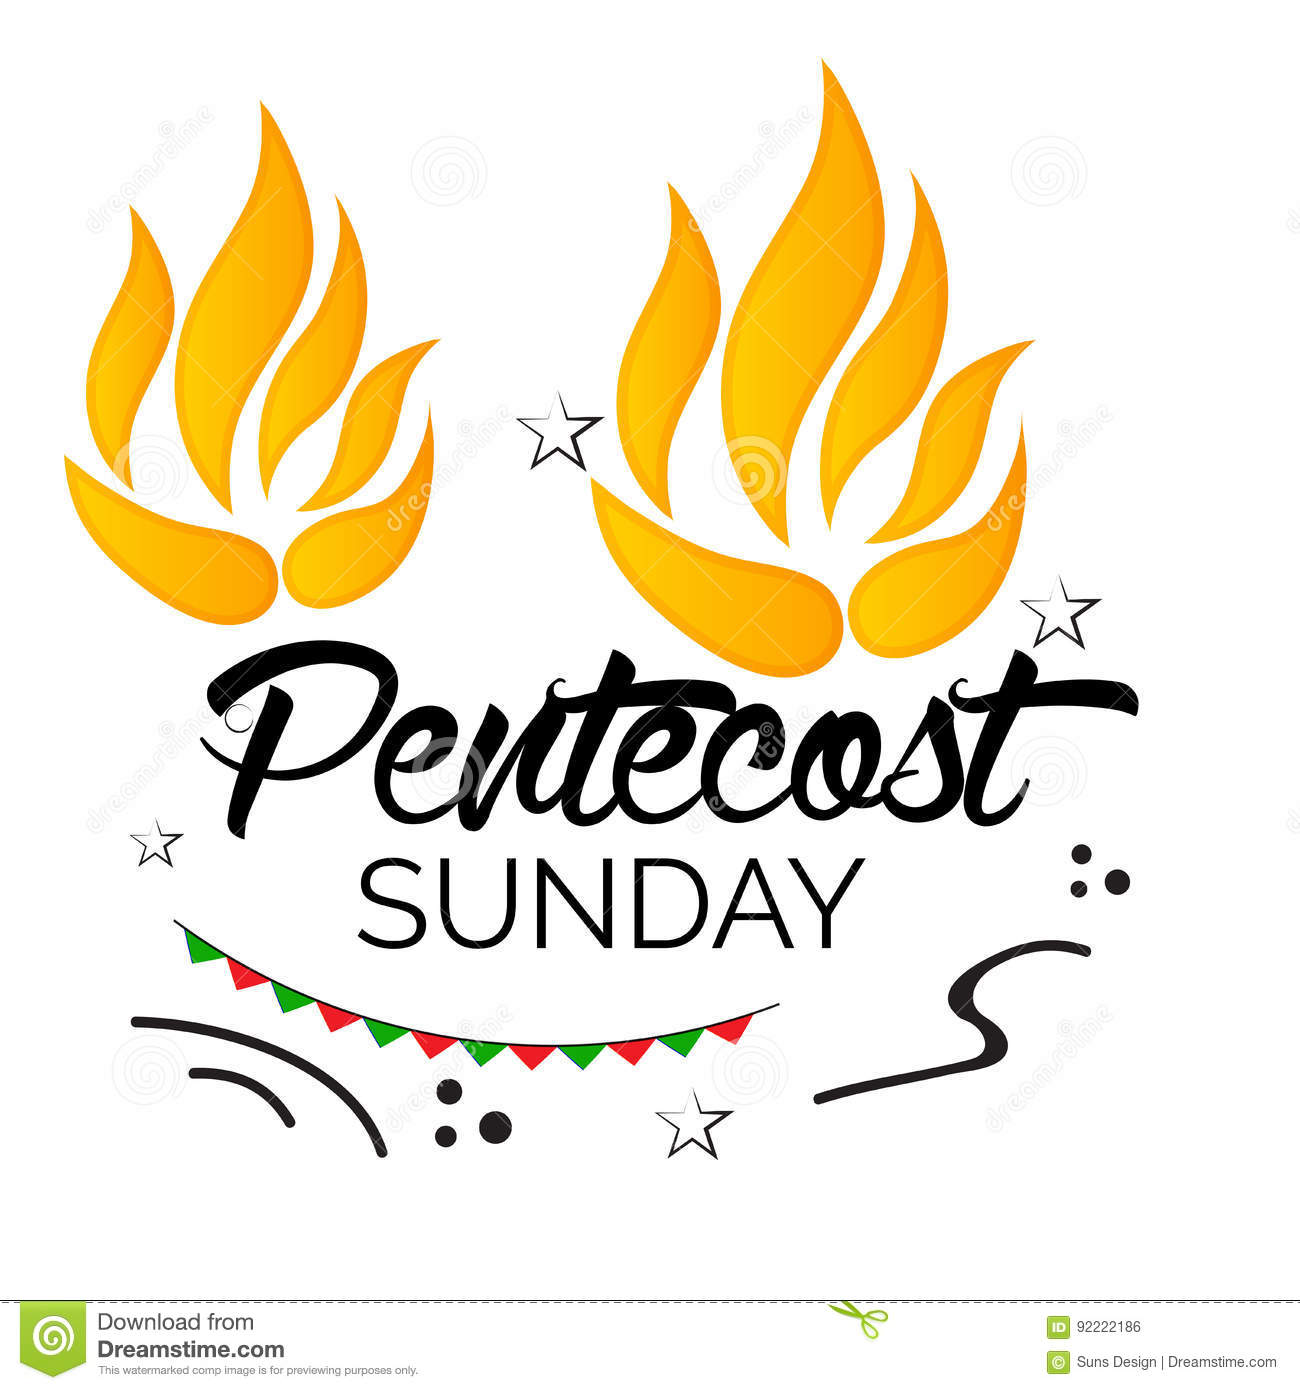 Pentecost clipart images clipart black and white Clipart for pentecost sunday 3 » Clipart Station clipart black and white